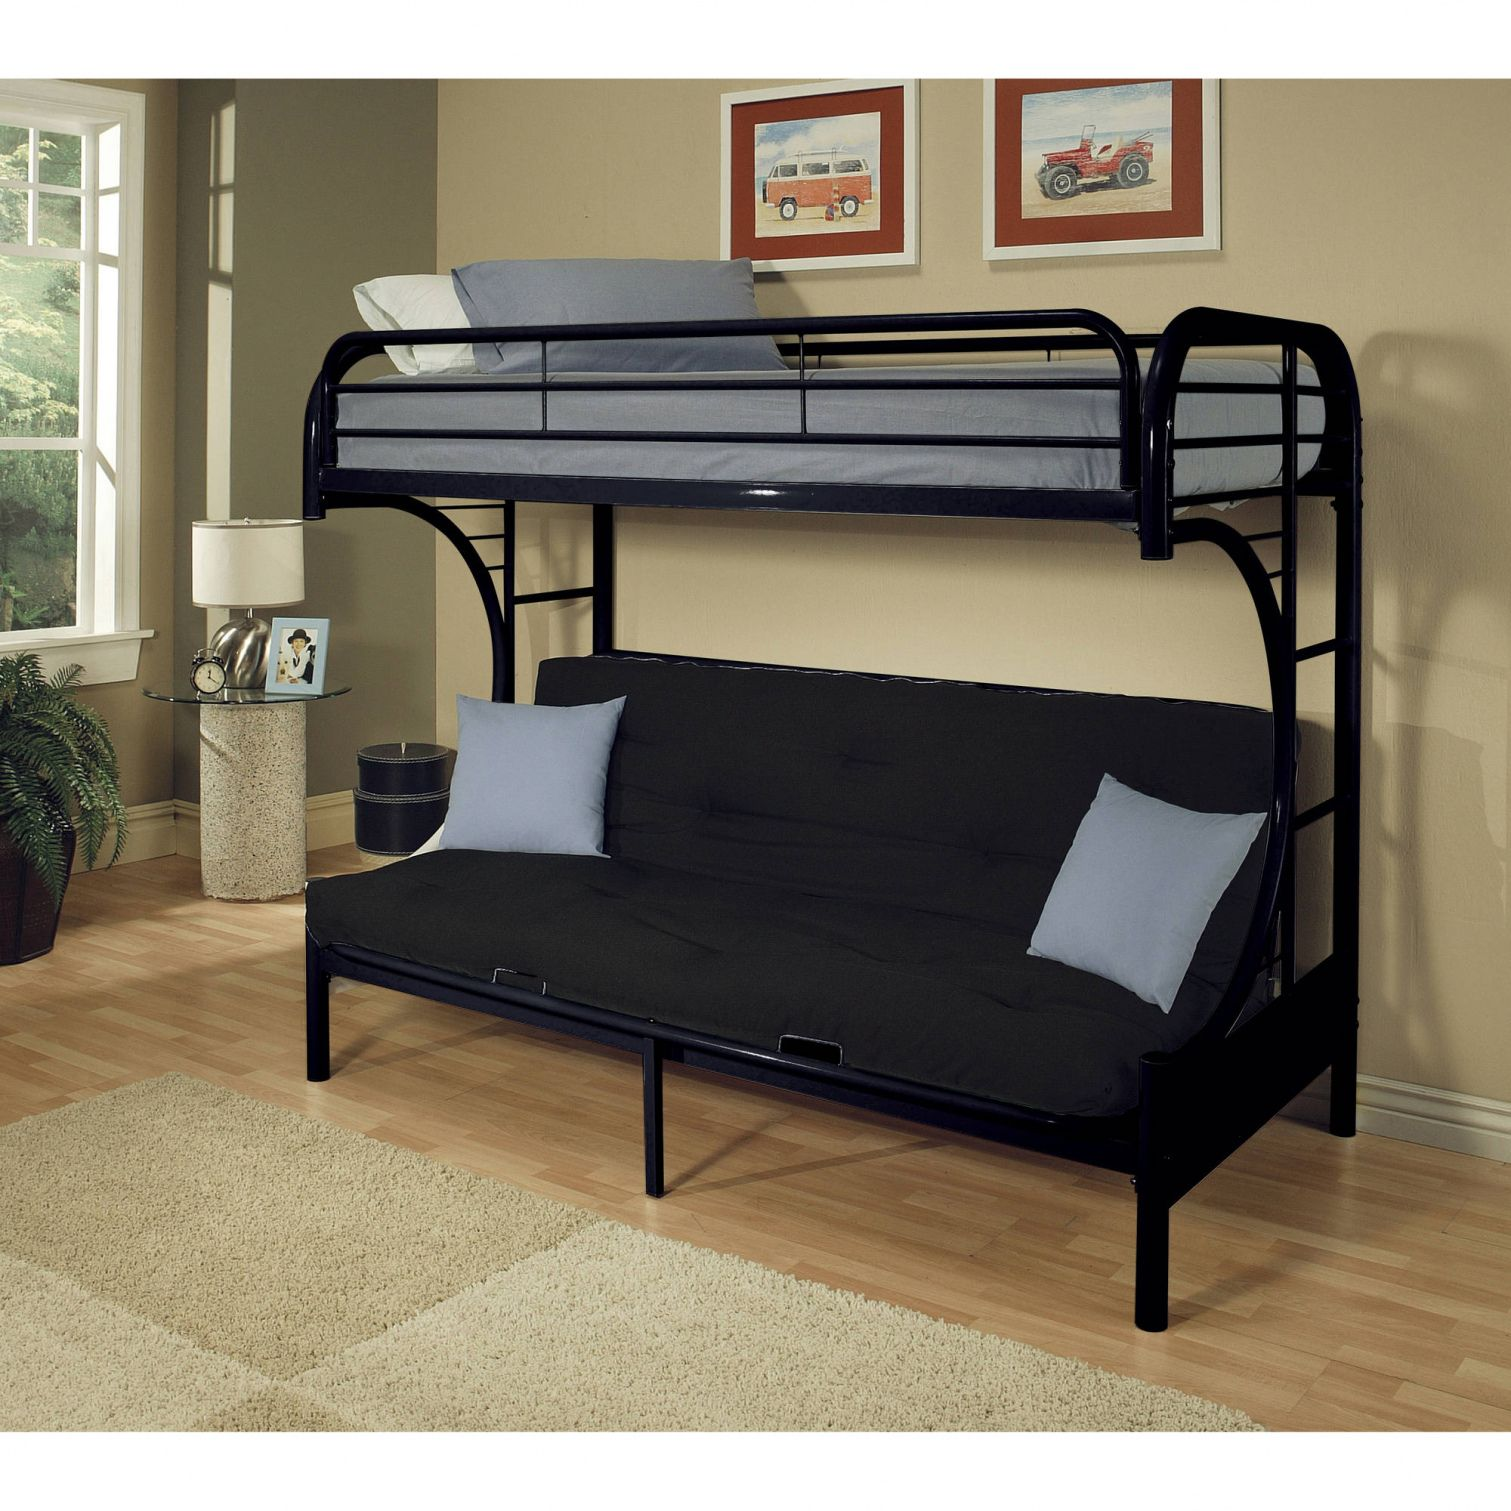 Futon Bunk Bed Neutral Interior Paint Colors Check More At Http Billiepiperfan Com